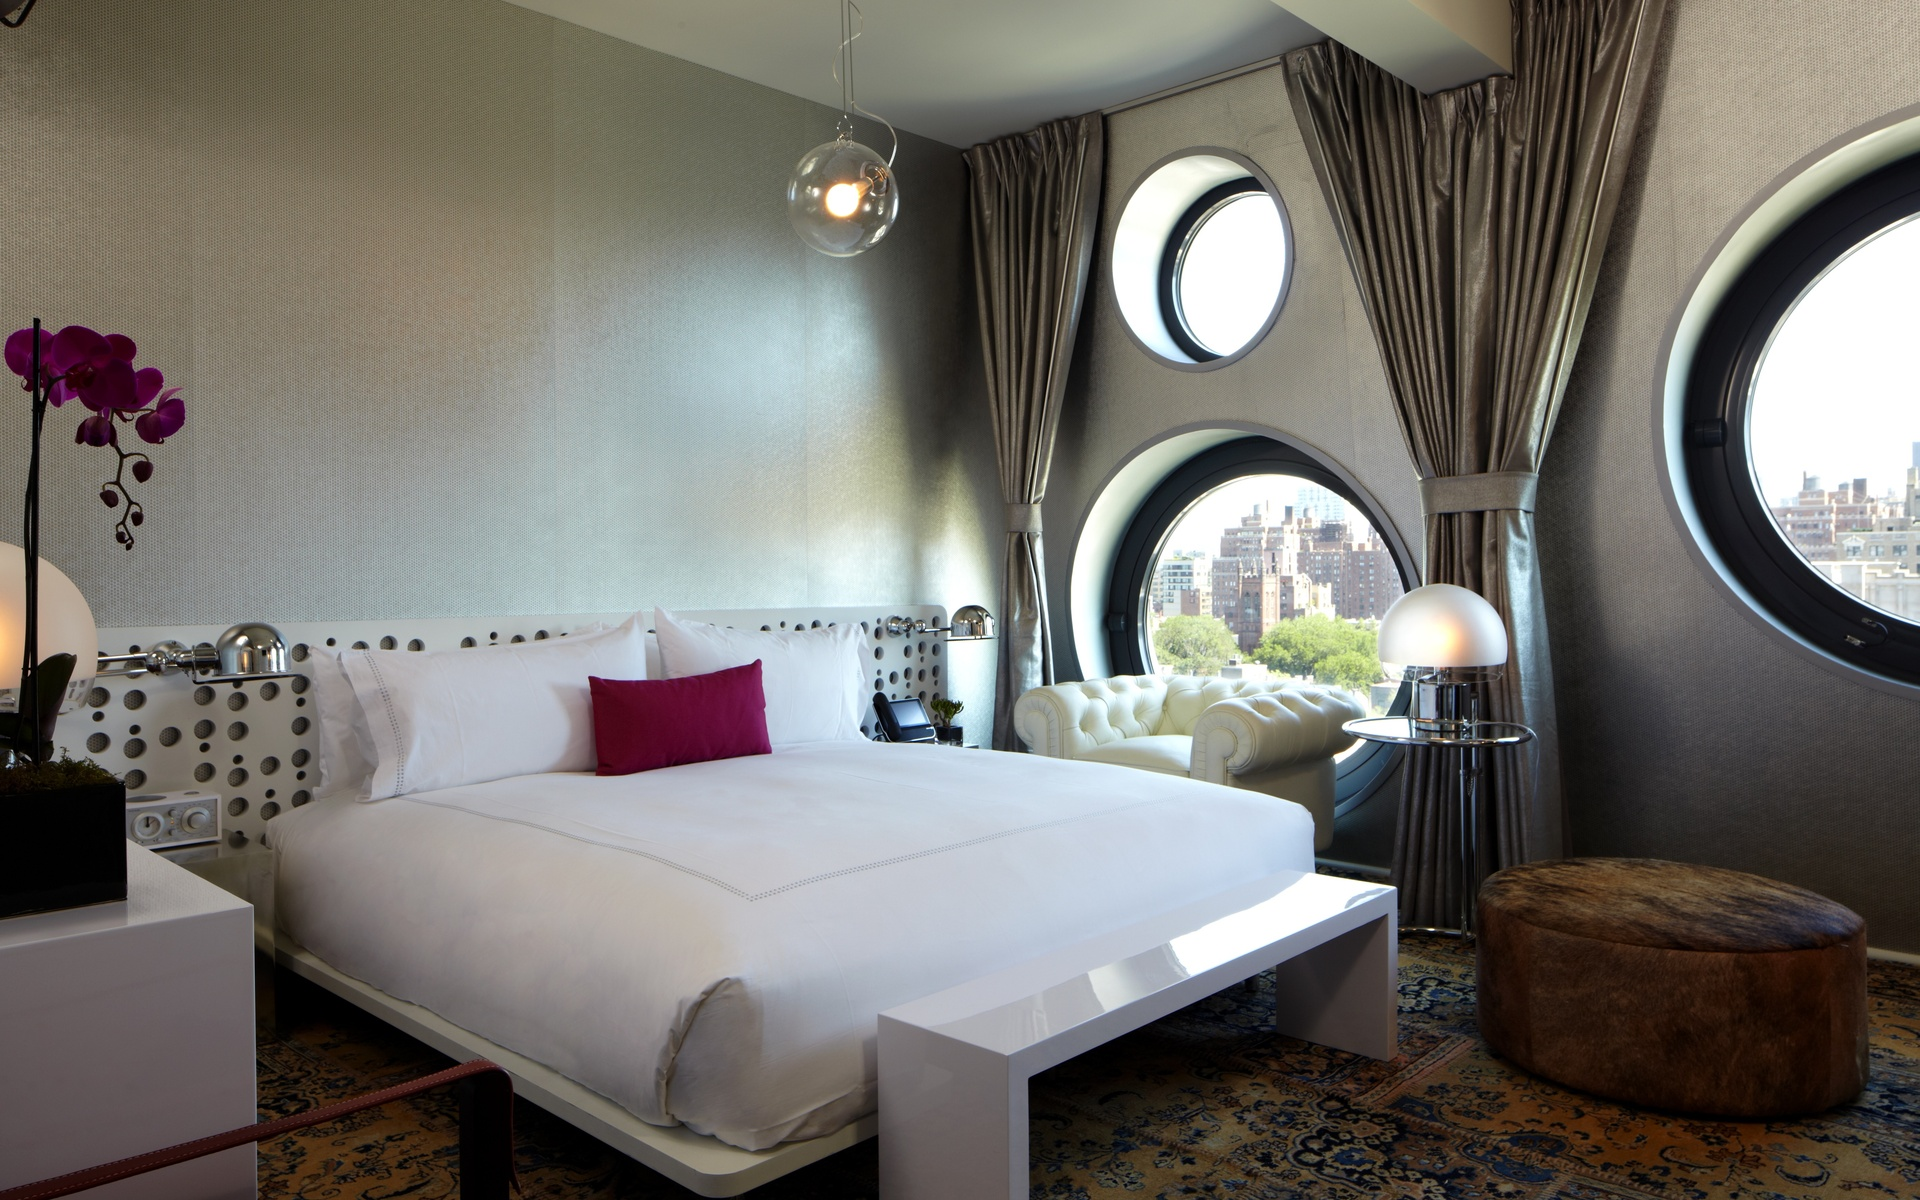 Round windows are perfect for a modern bedroom